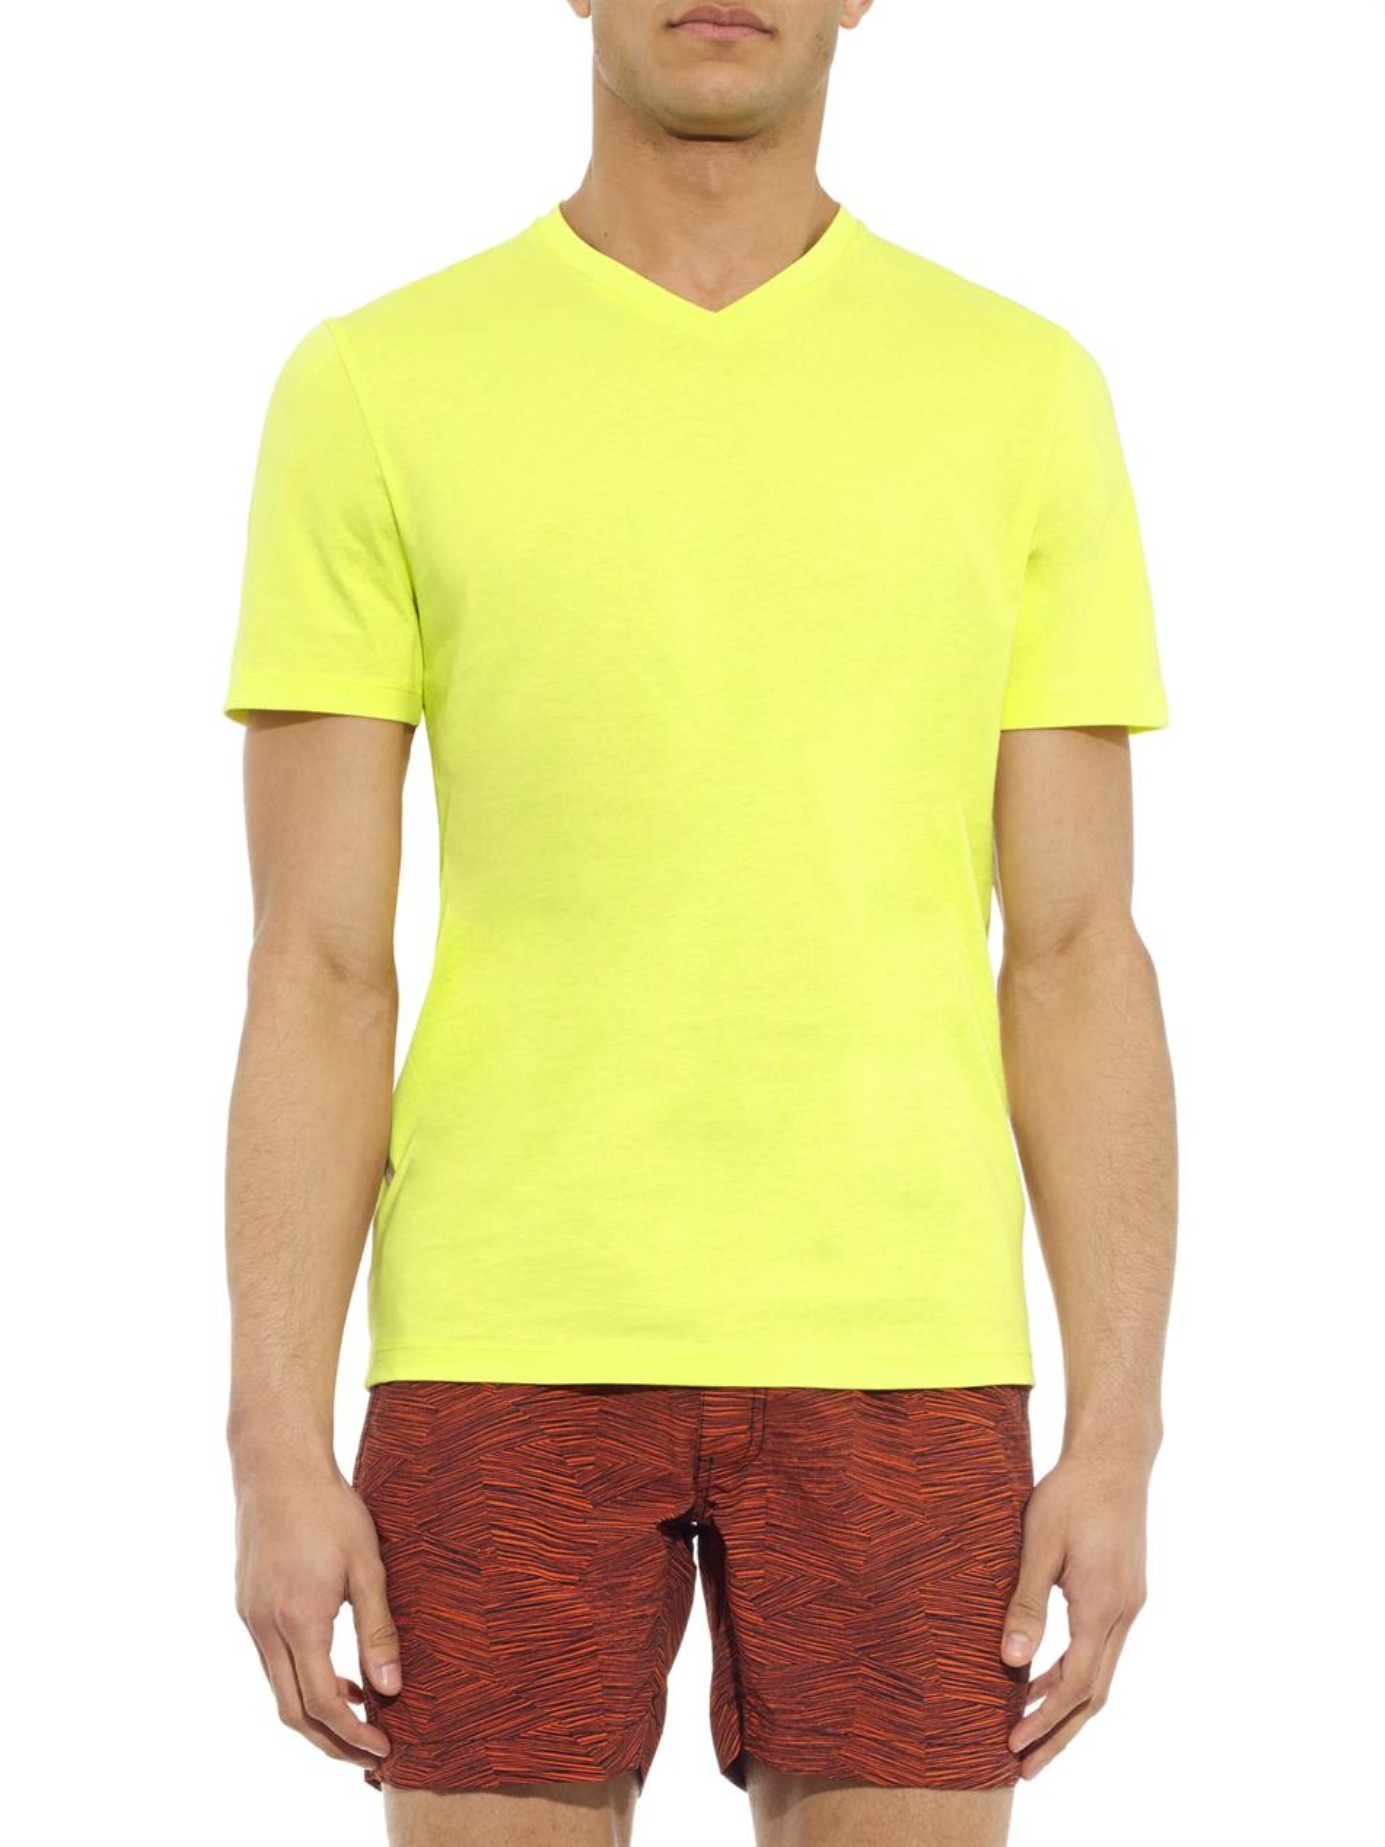 Lyst Danward V Neck Cotton T Shirt In Yellow For Men